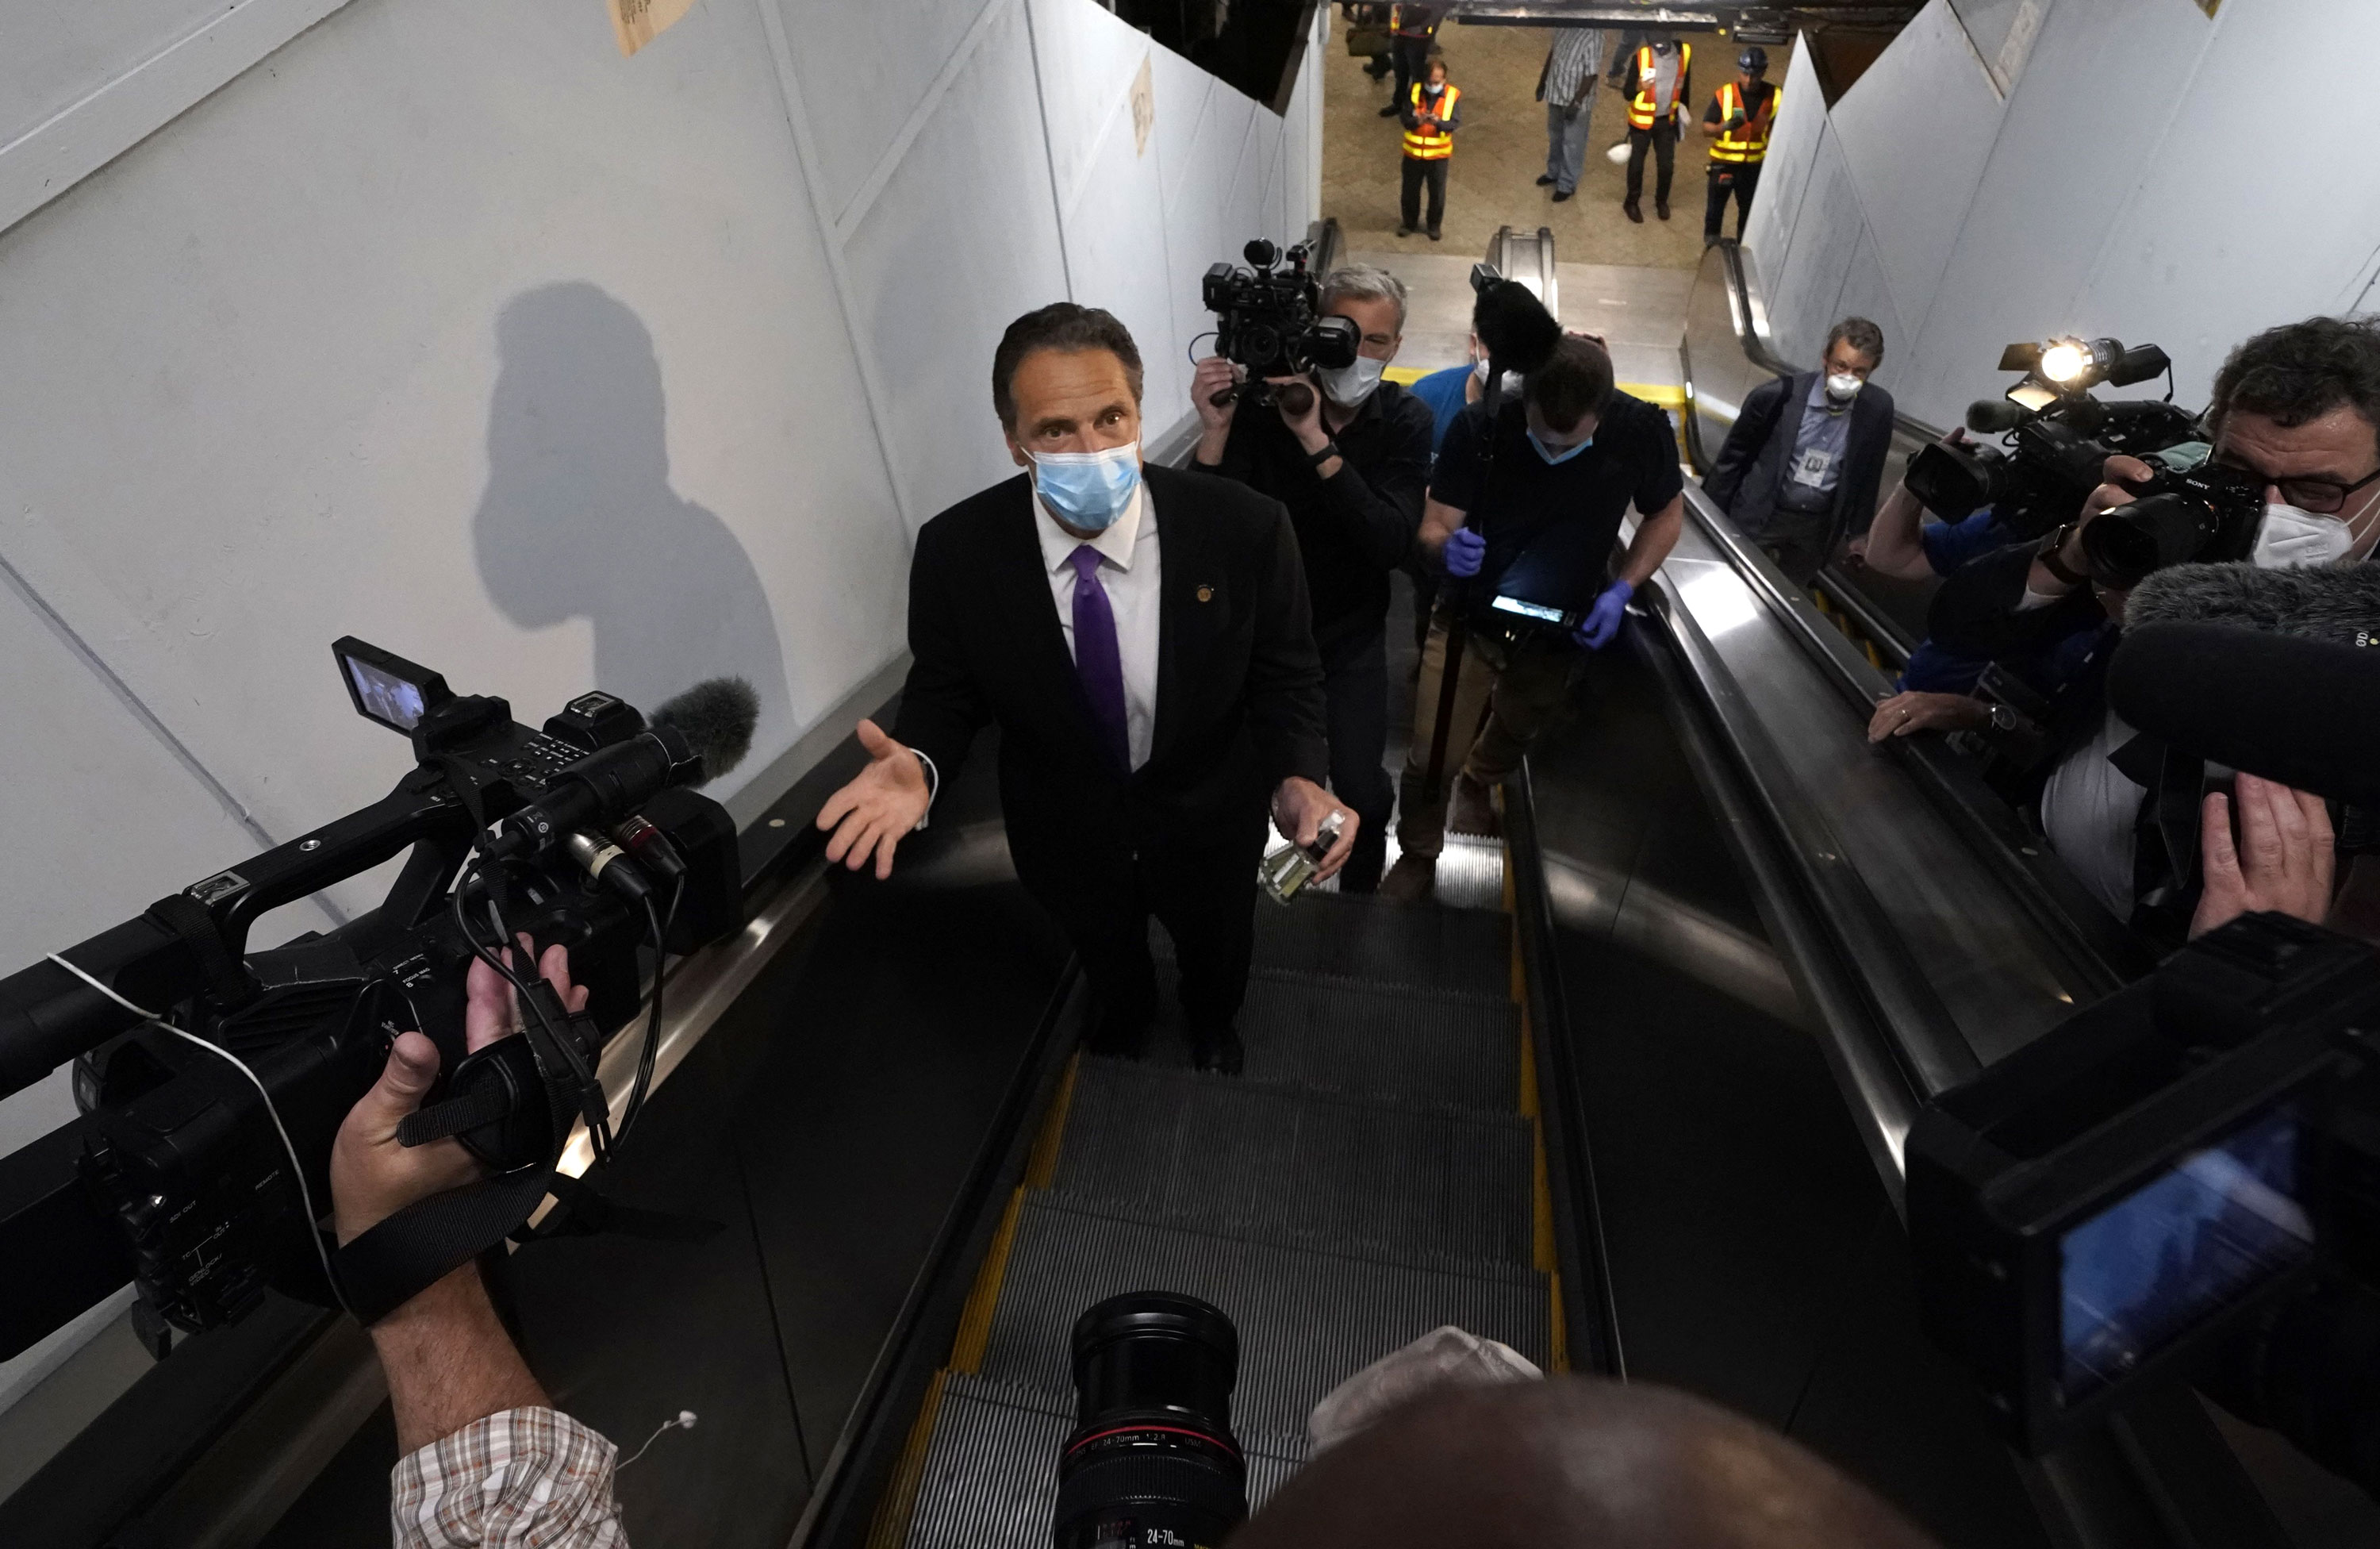 New York Governor Andrew Cuomo speaks after riding the New York City subway 7 train into the city on June 8 in New York.